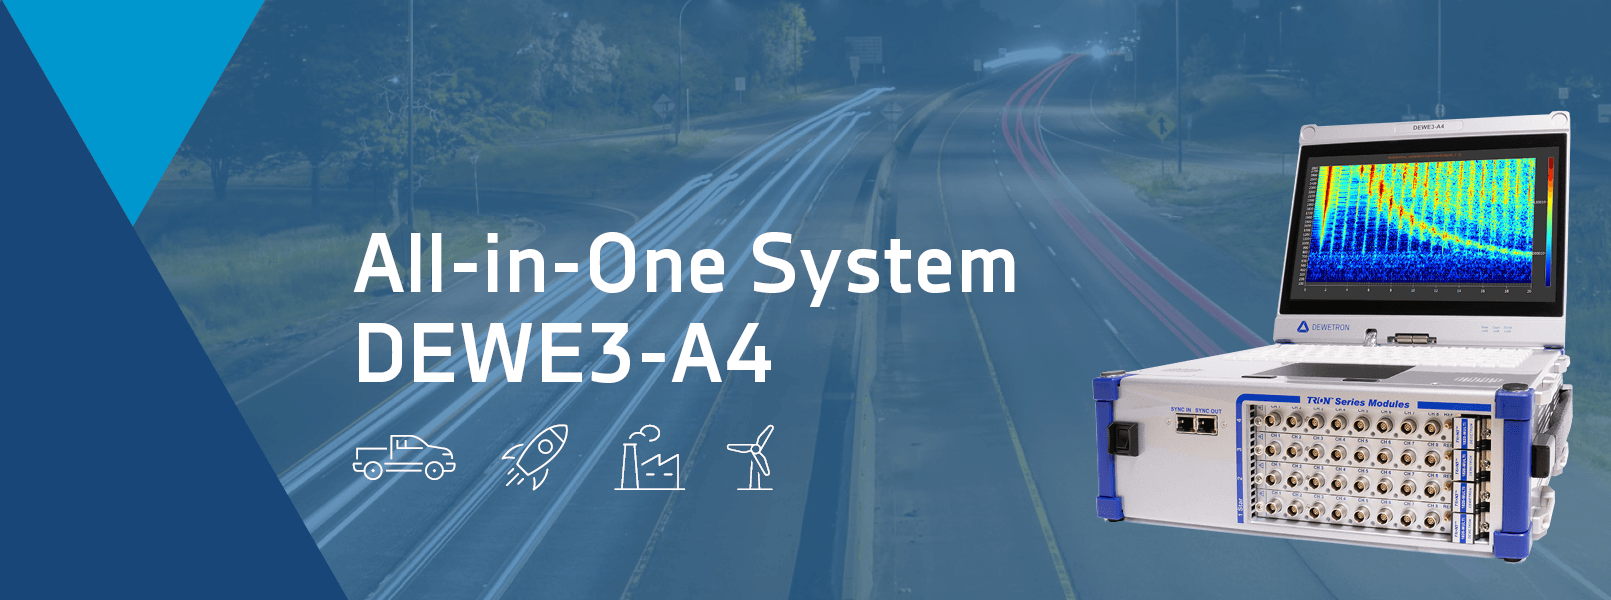 flexible-powerful-fast-all-in-one-system-dewe3-a4